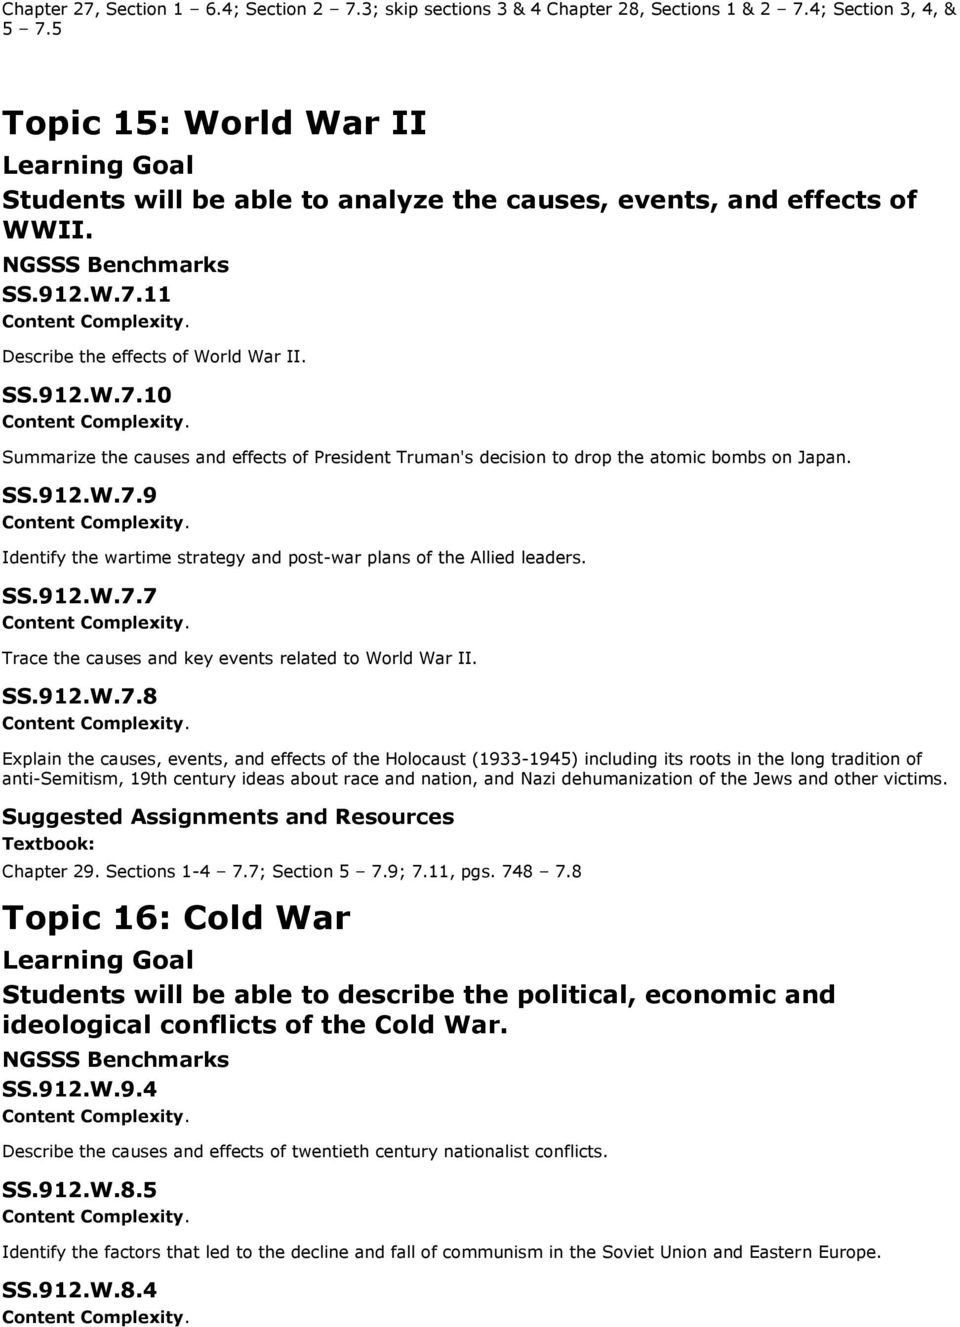 11 Describe the effects of World War II. SS.912.W.7.10 Summarize the causes and effects of President Truman's decision to drop the atomic bombs on Japan. SS.912.W.7.9 Identify the wartime strategy and post-war plans of the Allied leaders.